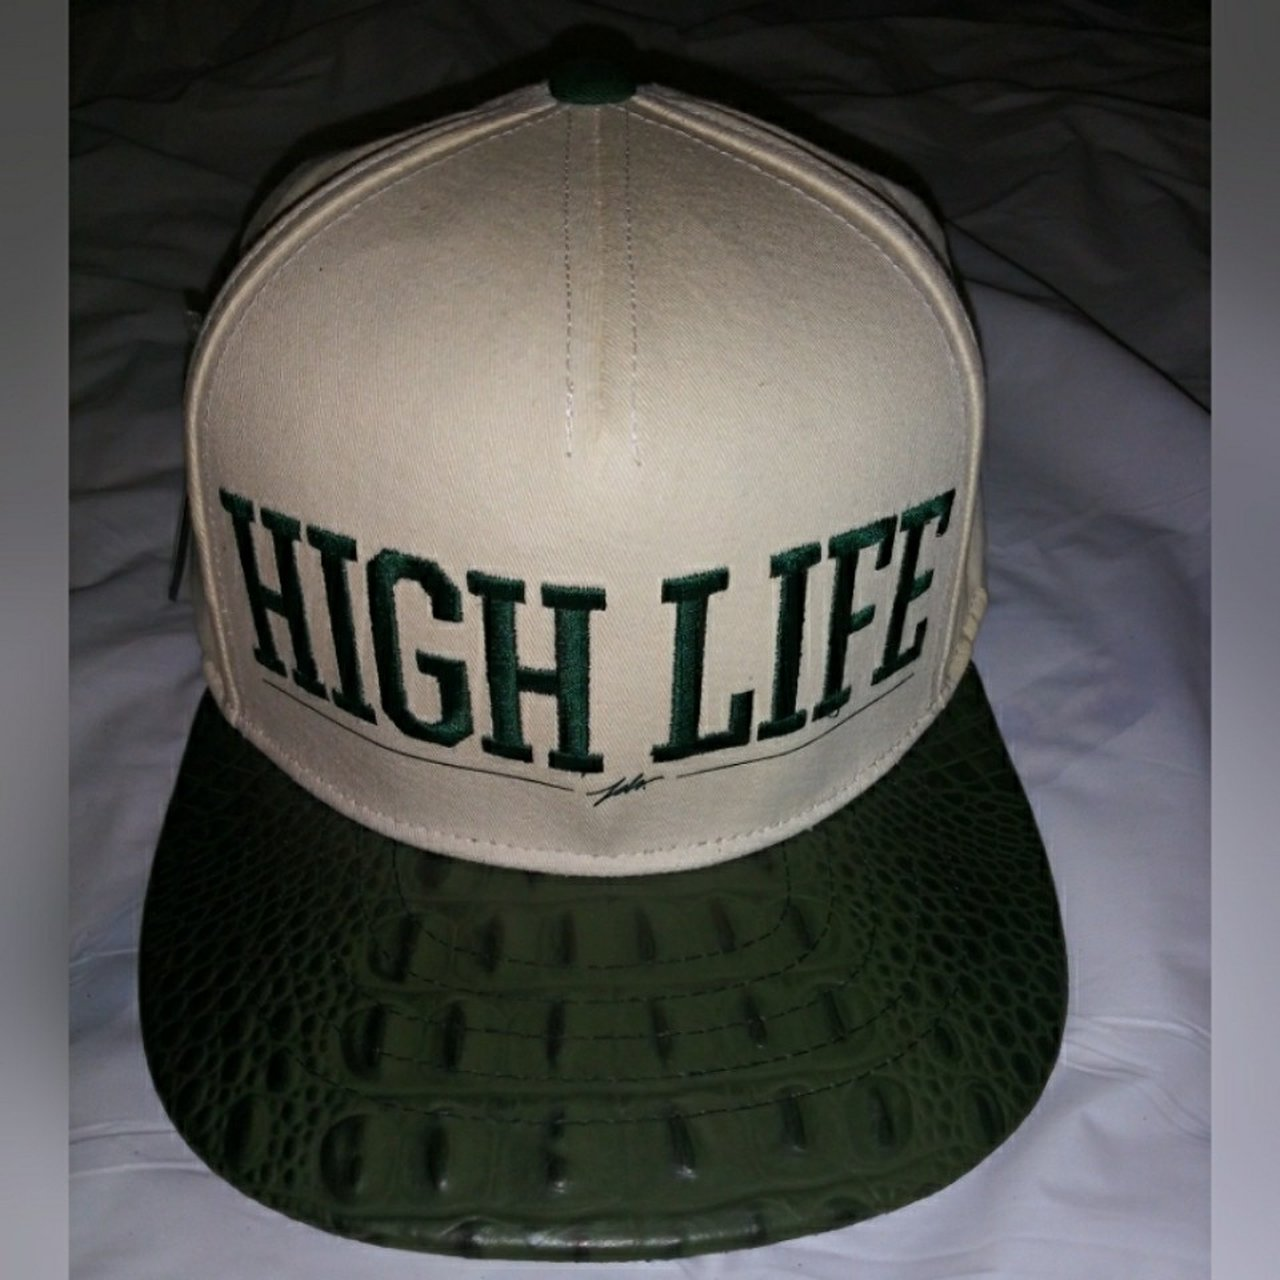 8025bdd61e4 JSLV HIGH LIFE Snapback Hat Off-white Green Large Embroidery - Depop